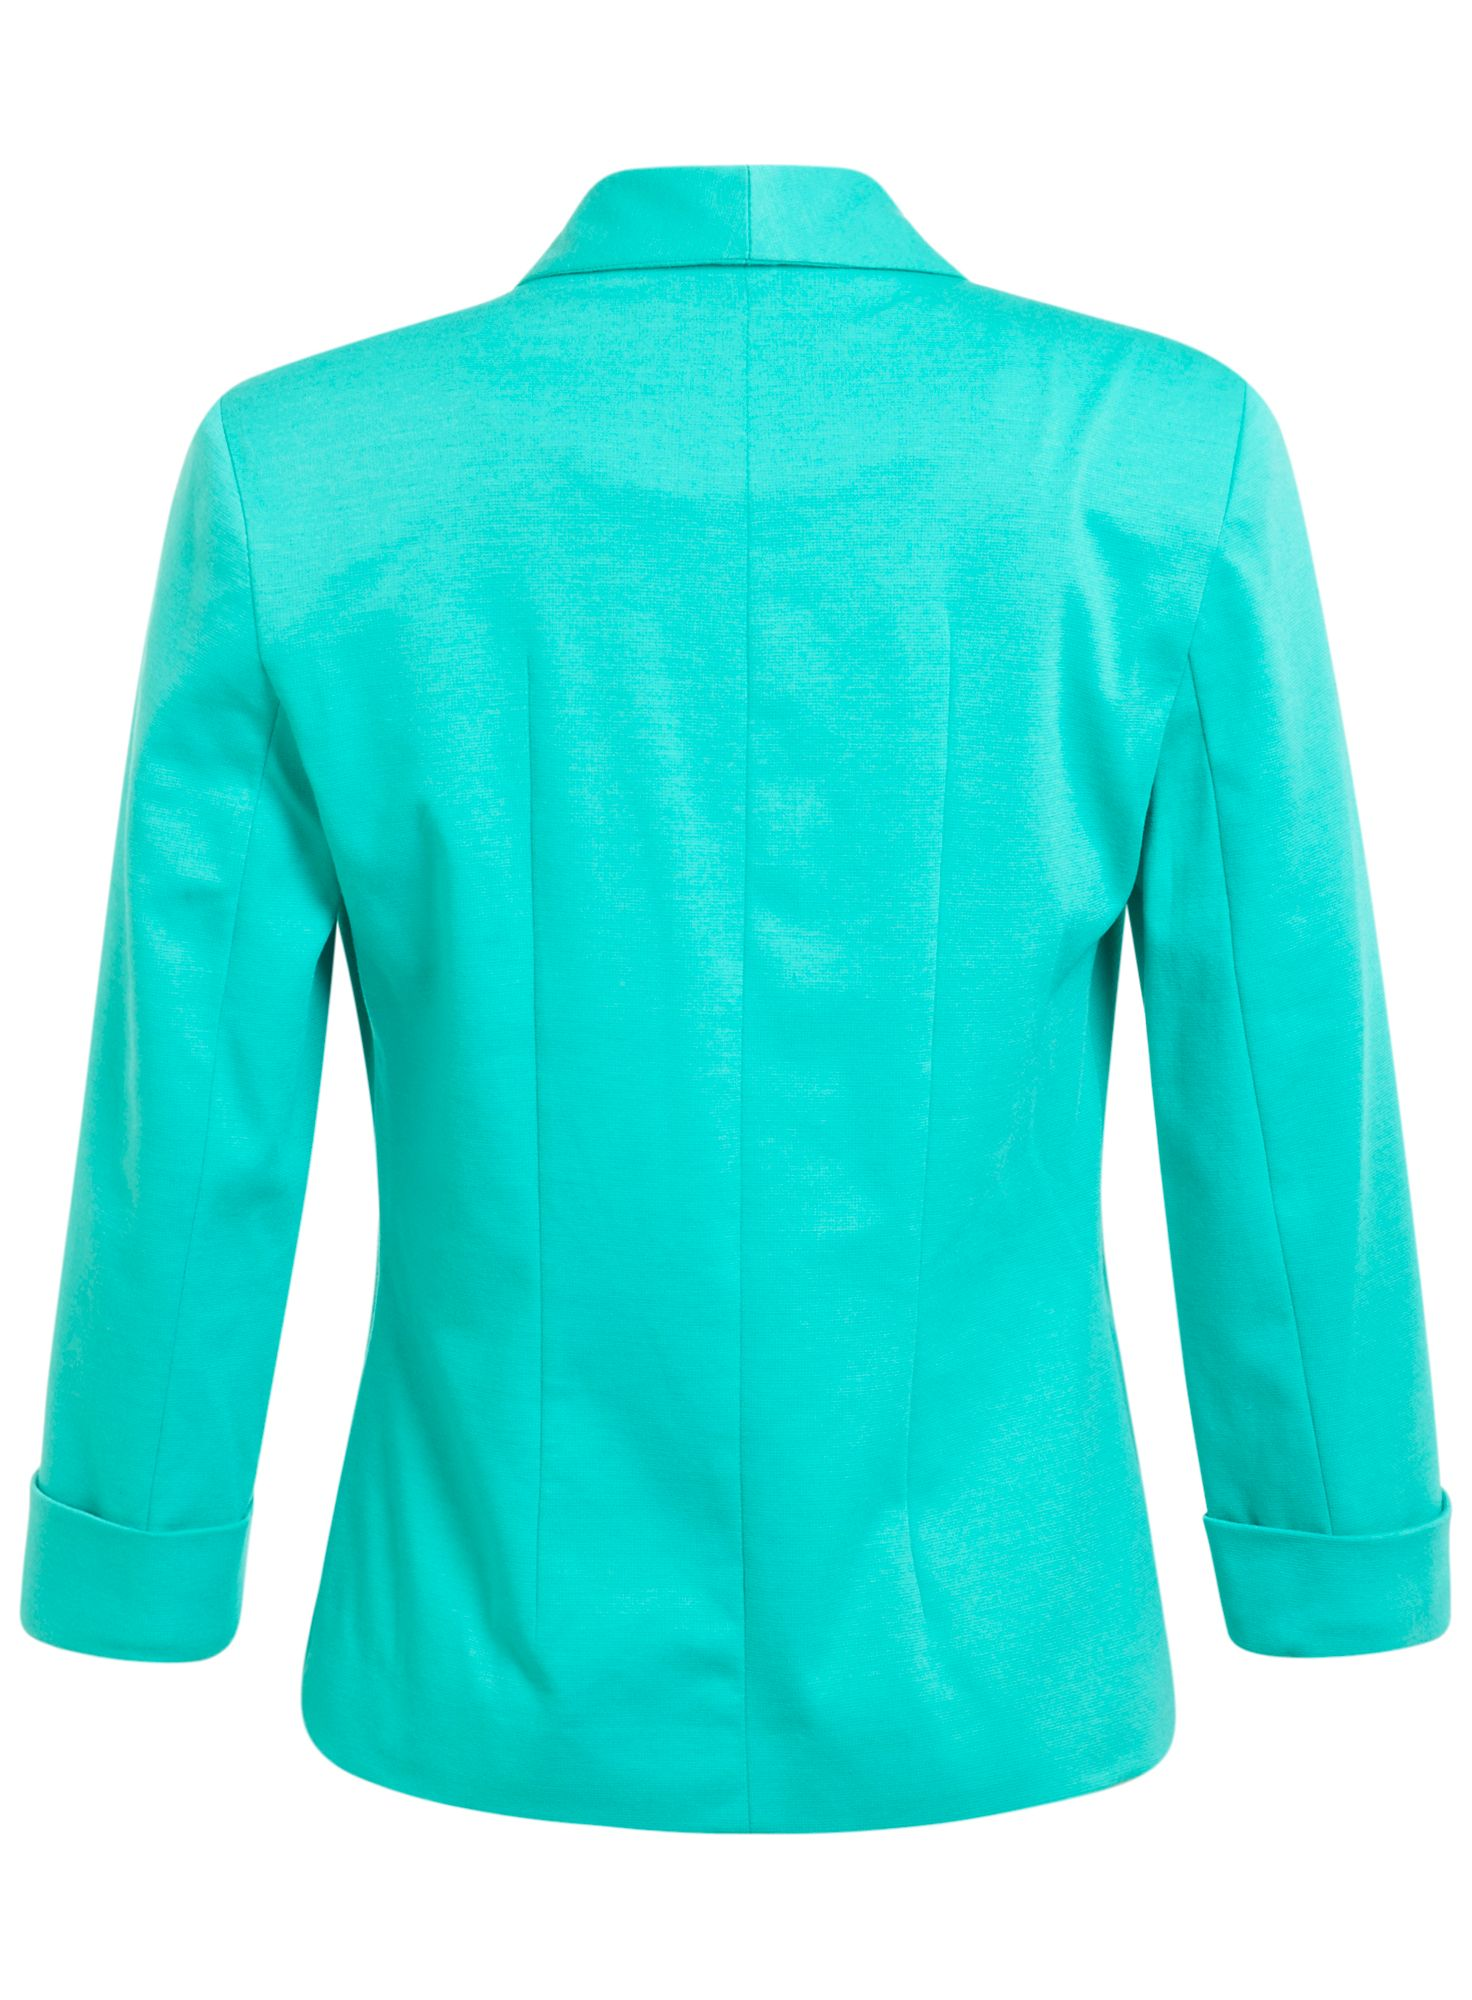 Spearmint ponte jacket